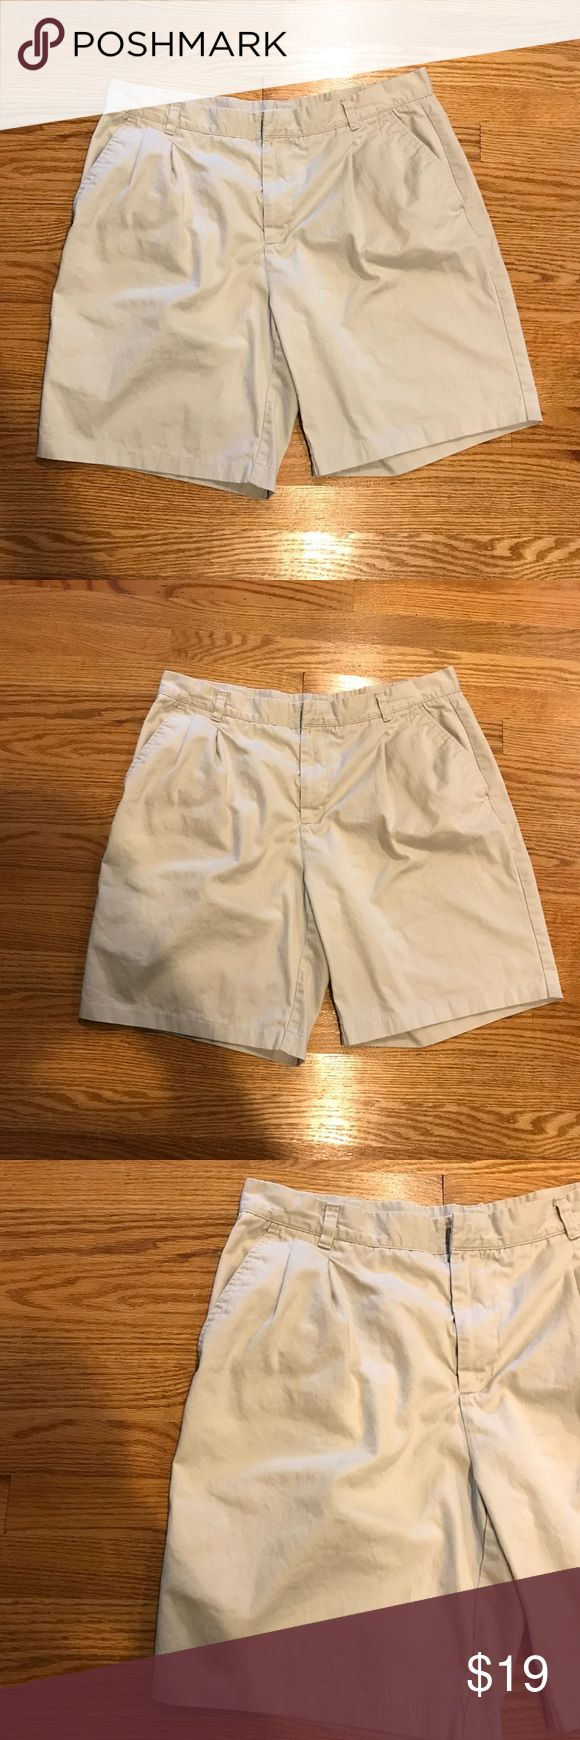 "Men's George Light Khaki Shorts Size 38 Men's George Khaki Shorts. Size 38. Preloved, in great condition! Made of 100% cotton. The waist flat across measures approximately 15-3/4"" and inseam measures approximately 9-1/4"". All measurements are taken while the garment is laying flat and are approximate! George Shorts"